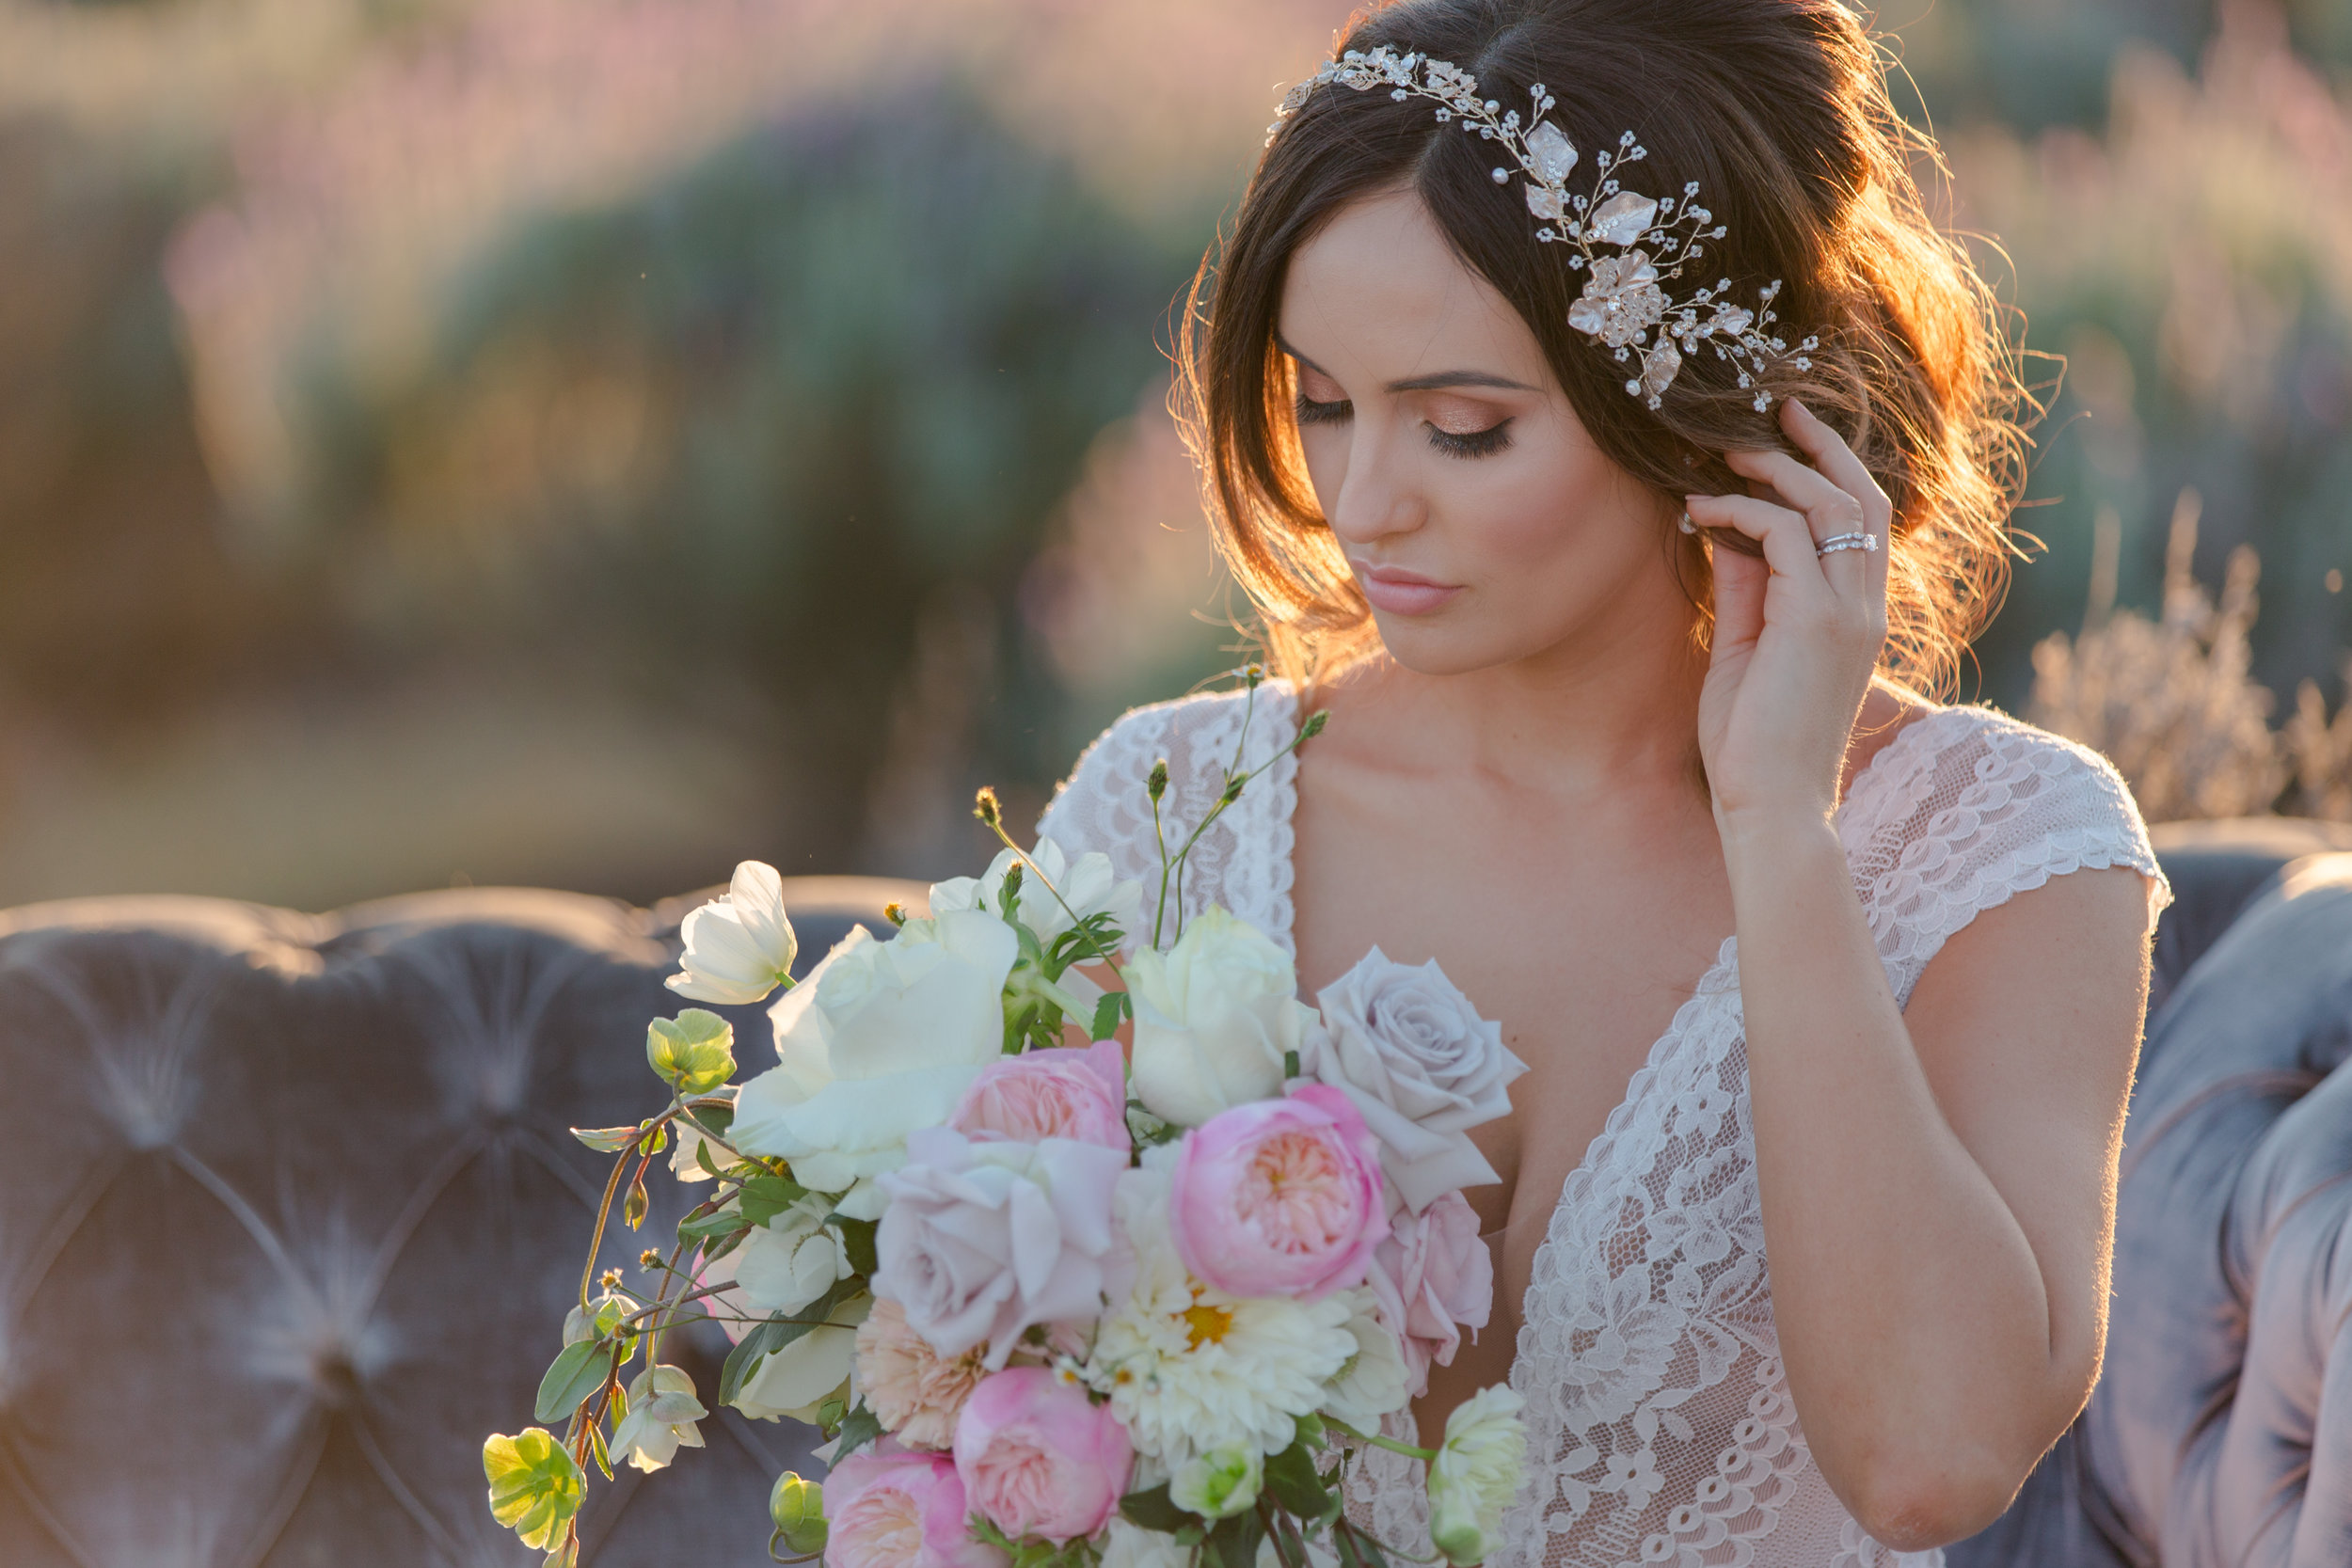 Jody Callan Hair  Create an amazing & lasting impression on your wedding day by booking highly skilled, experienced hair and makeup artists Jody & Prue. They will work with you every step of the way to create your dream bridal look. Happy wedding planning!